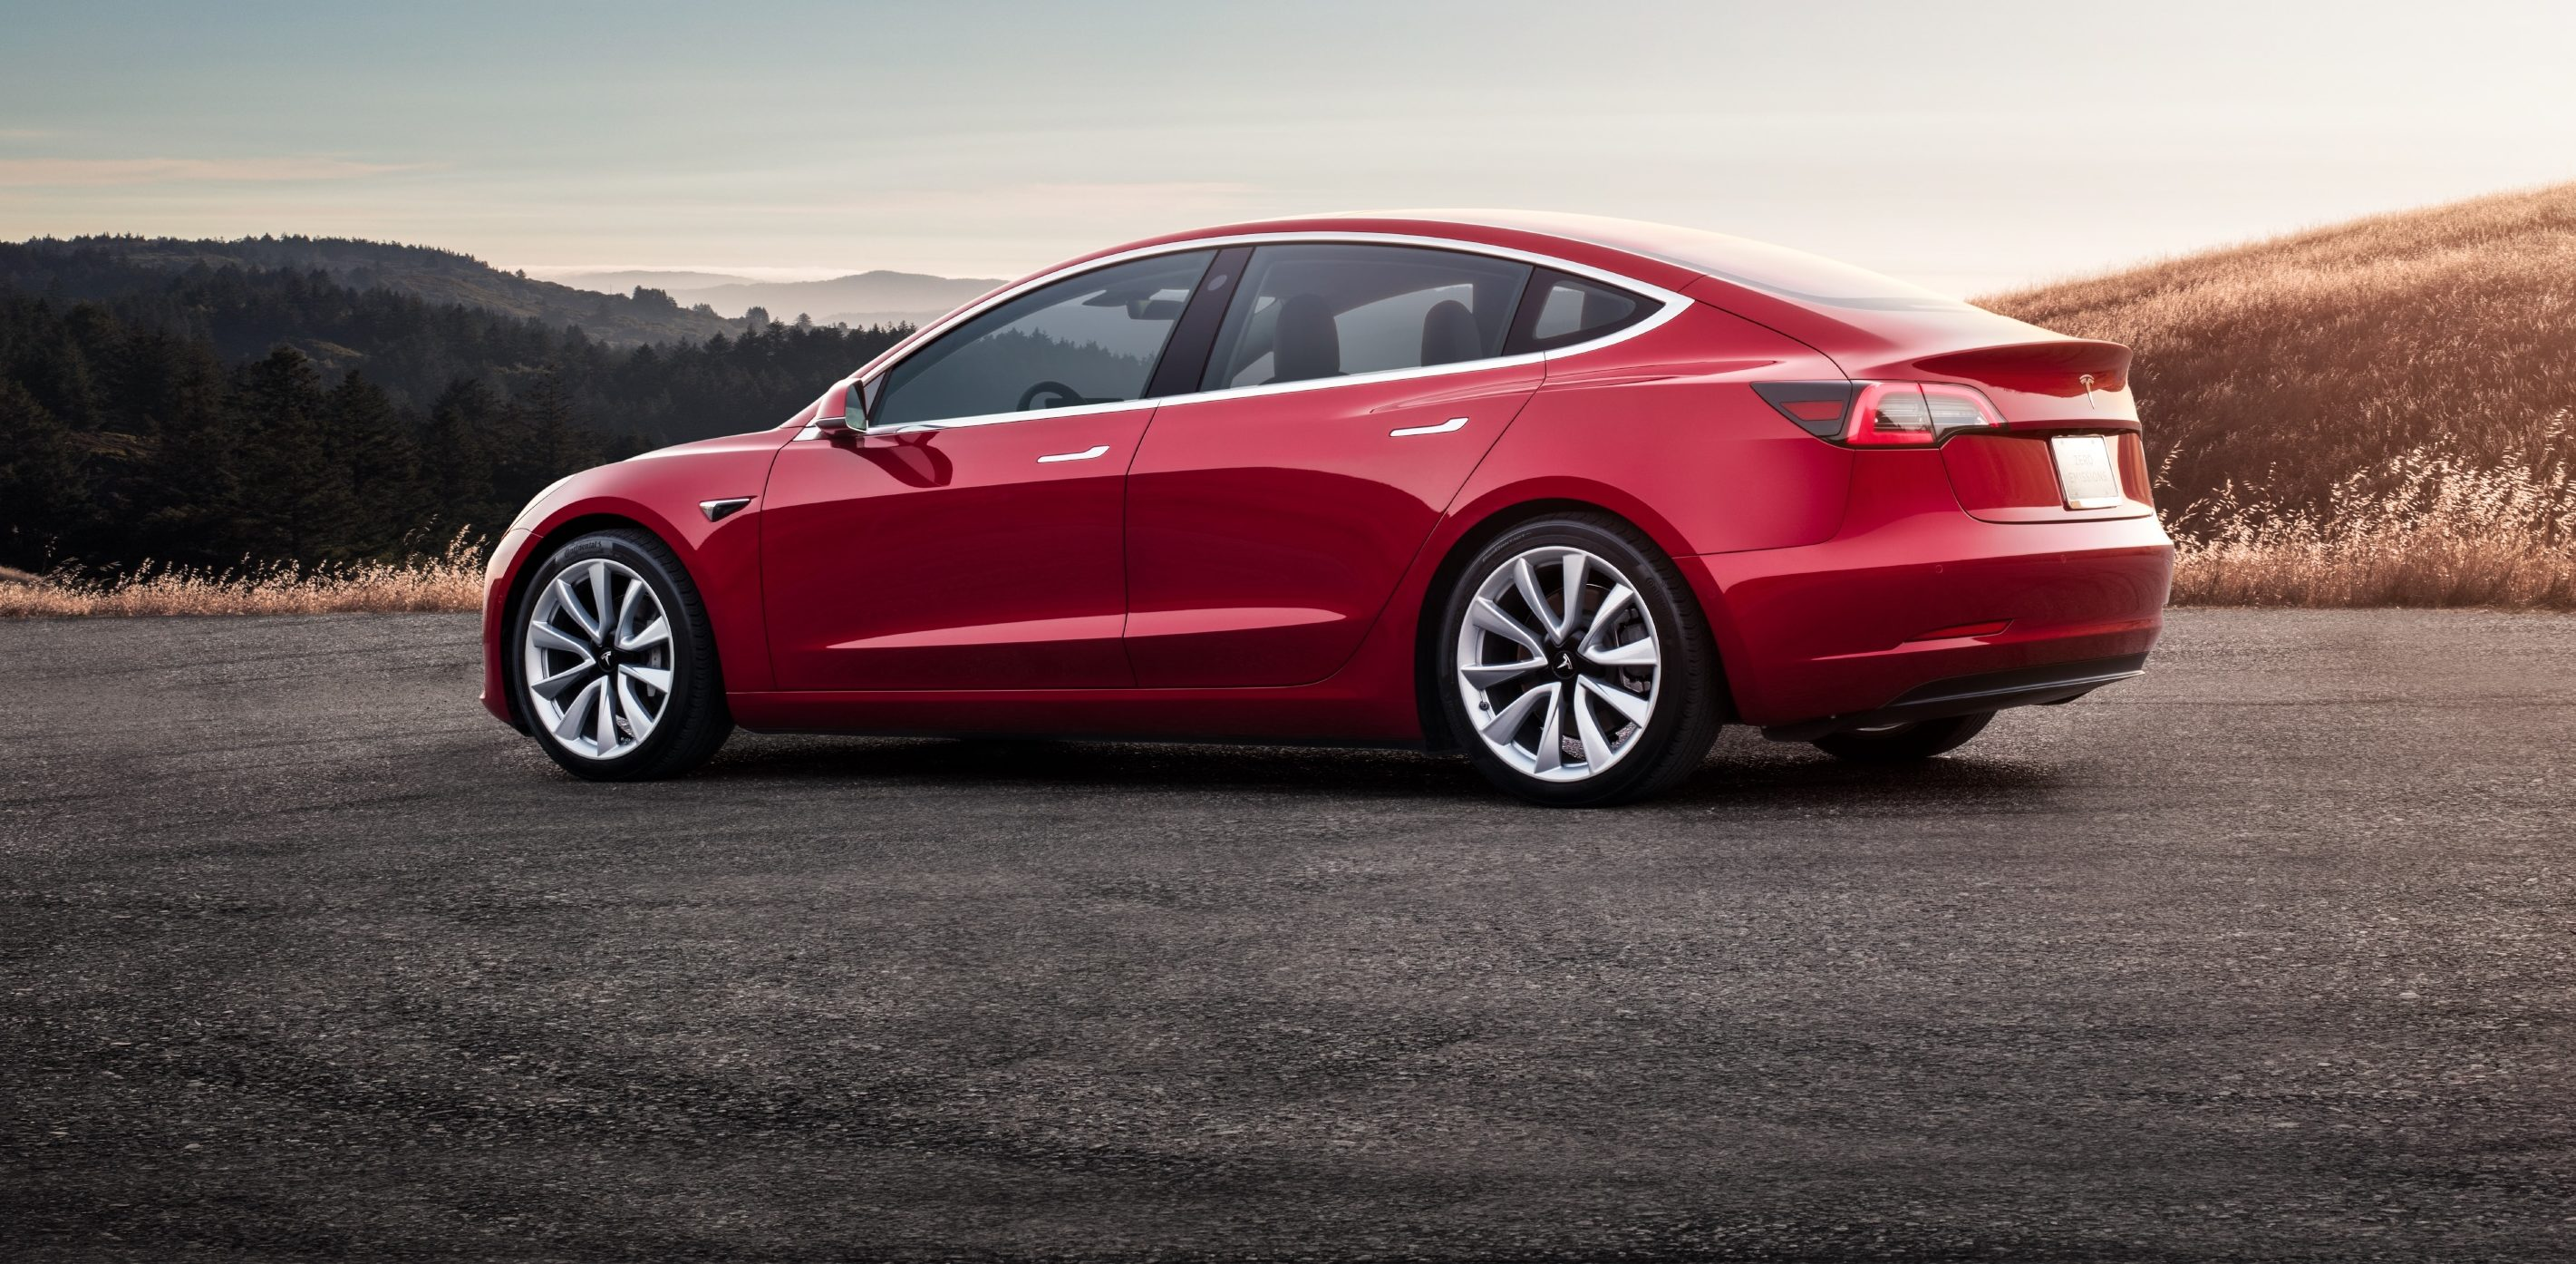 Tesla Model 3 Dubbed Best Electric Car By Noted Auto Reviewer In Way Evaluation